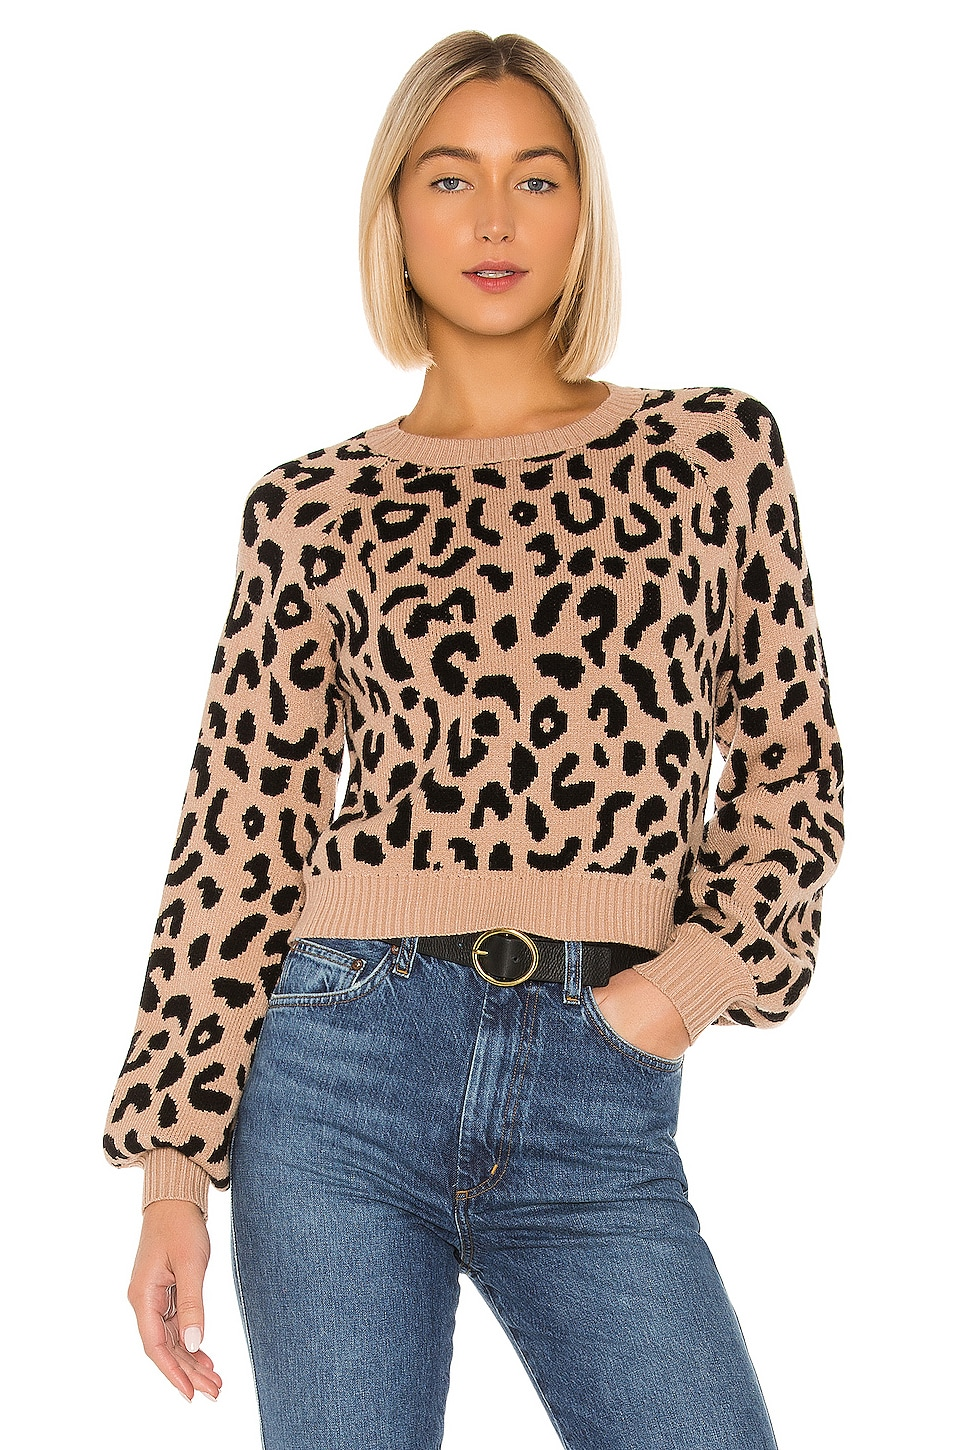 House of Harlow 1960 x REVOLVE Callum Sweater in Leopard